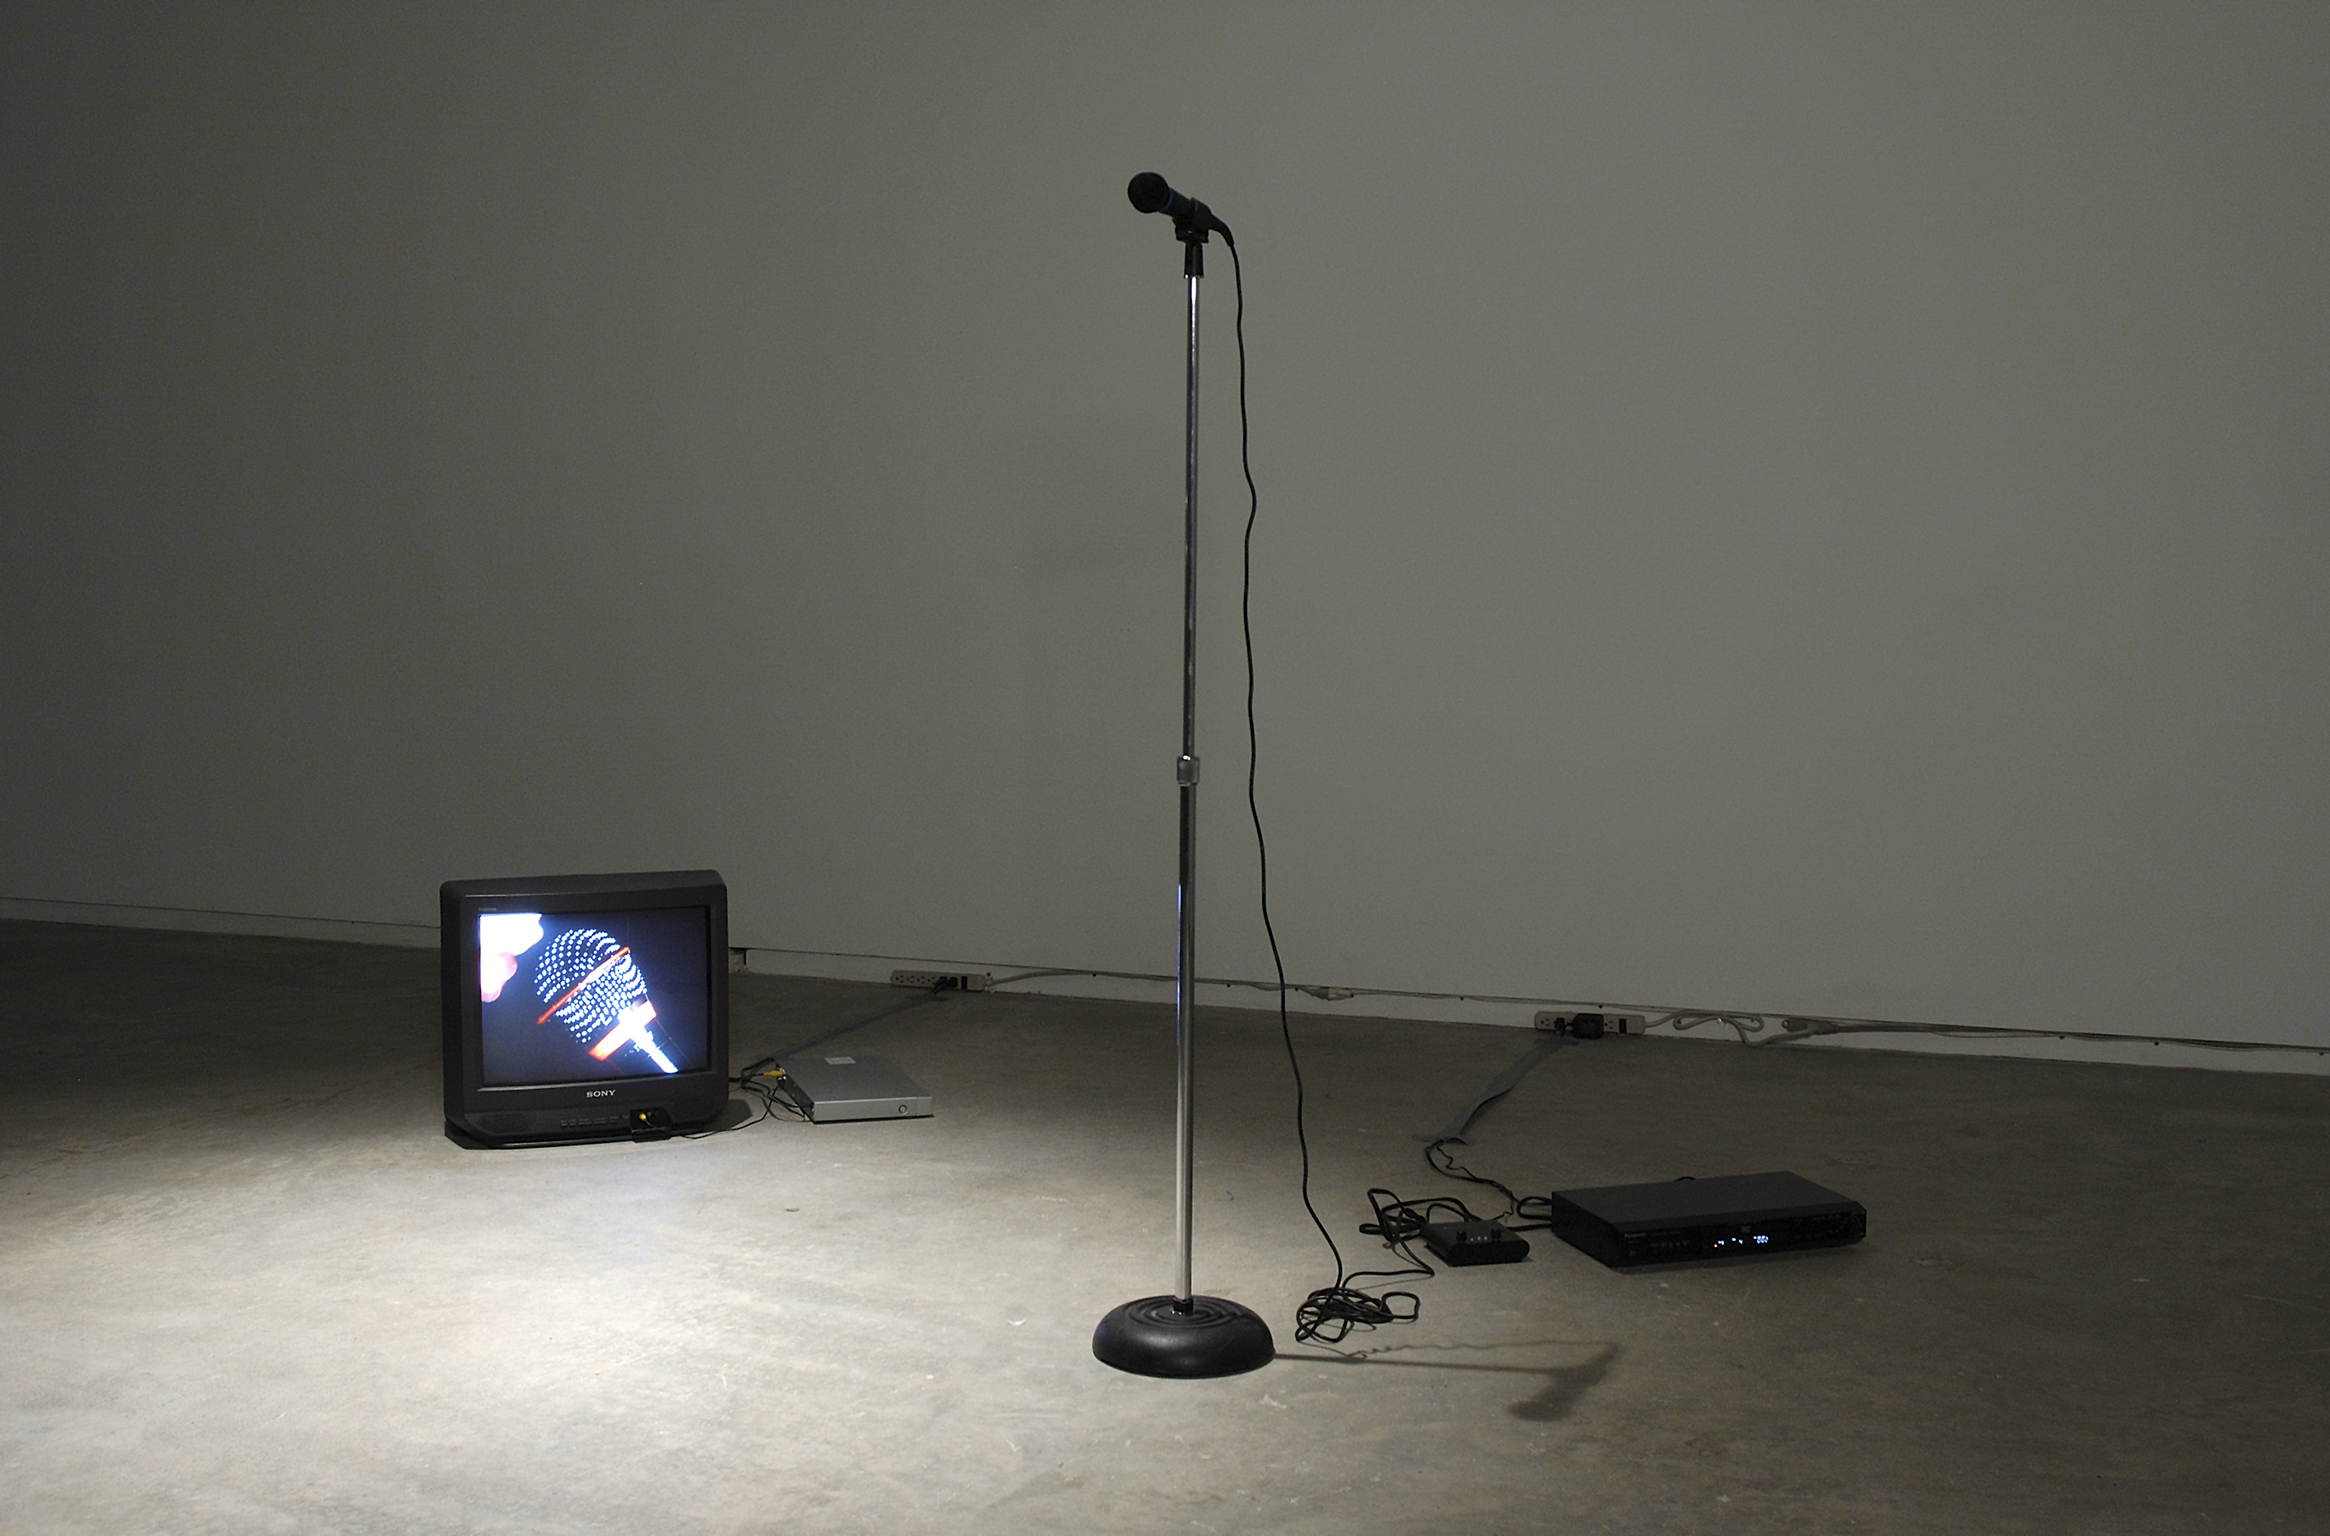 Isabelle Pauwels, If you can't finance your fiction shut the fuck up, 2006, mixed media, dimensions variable by